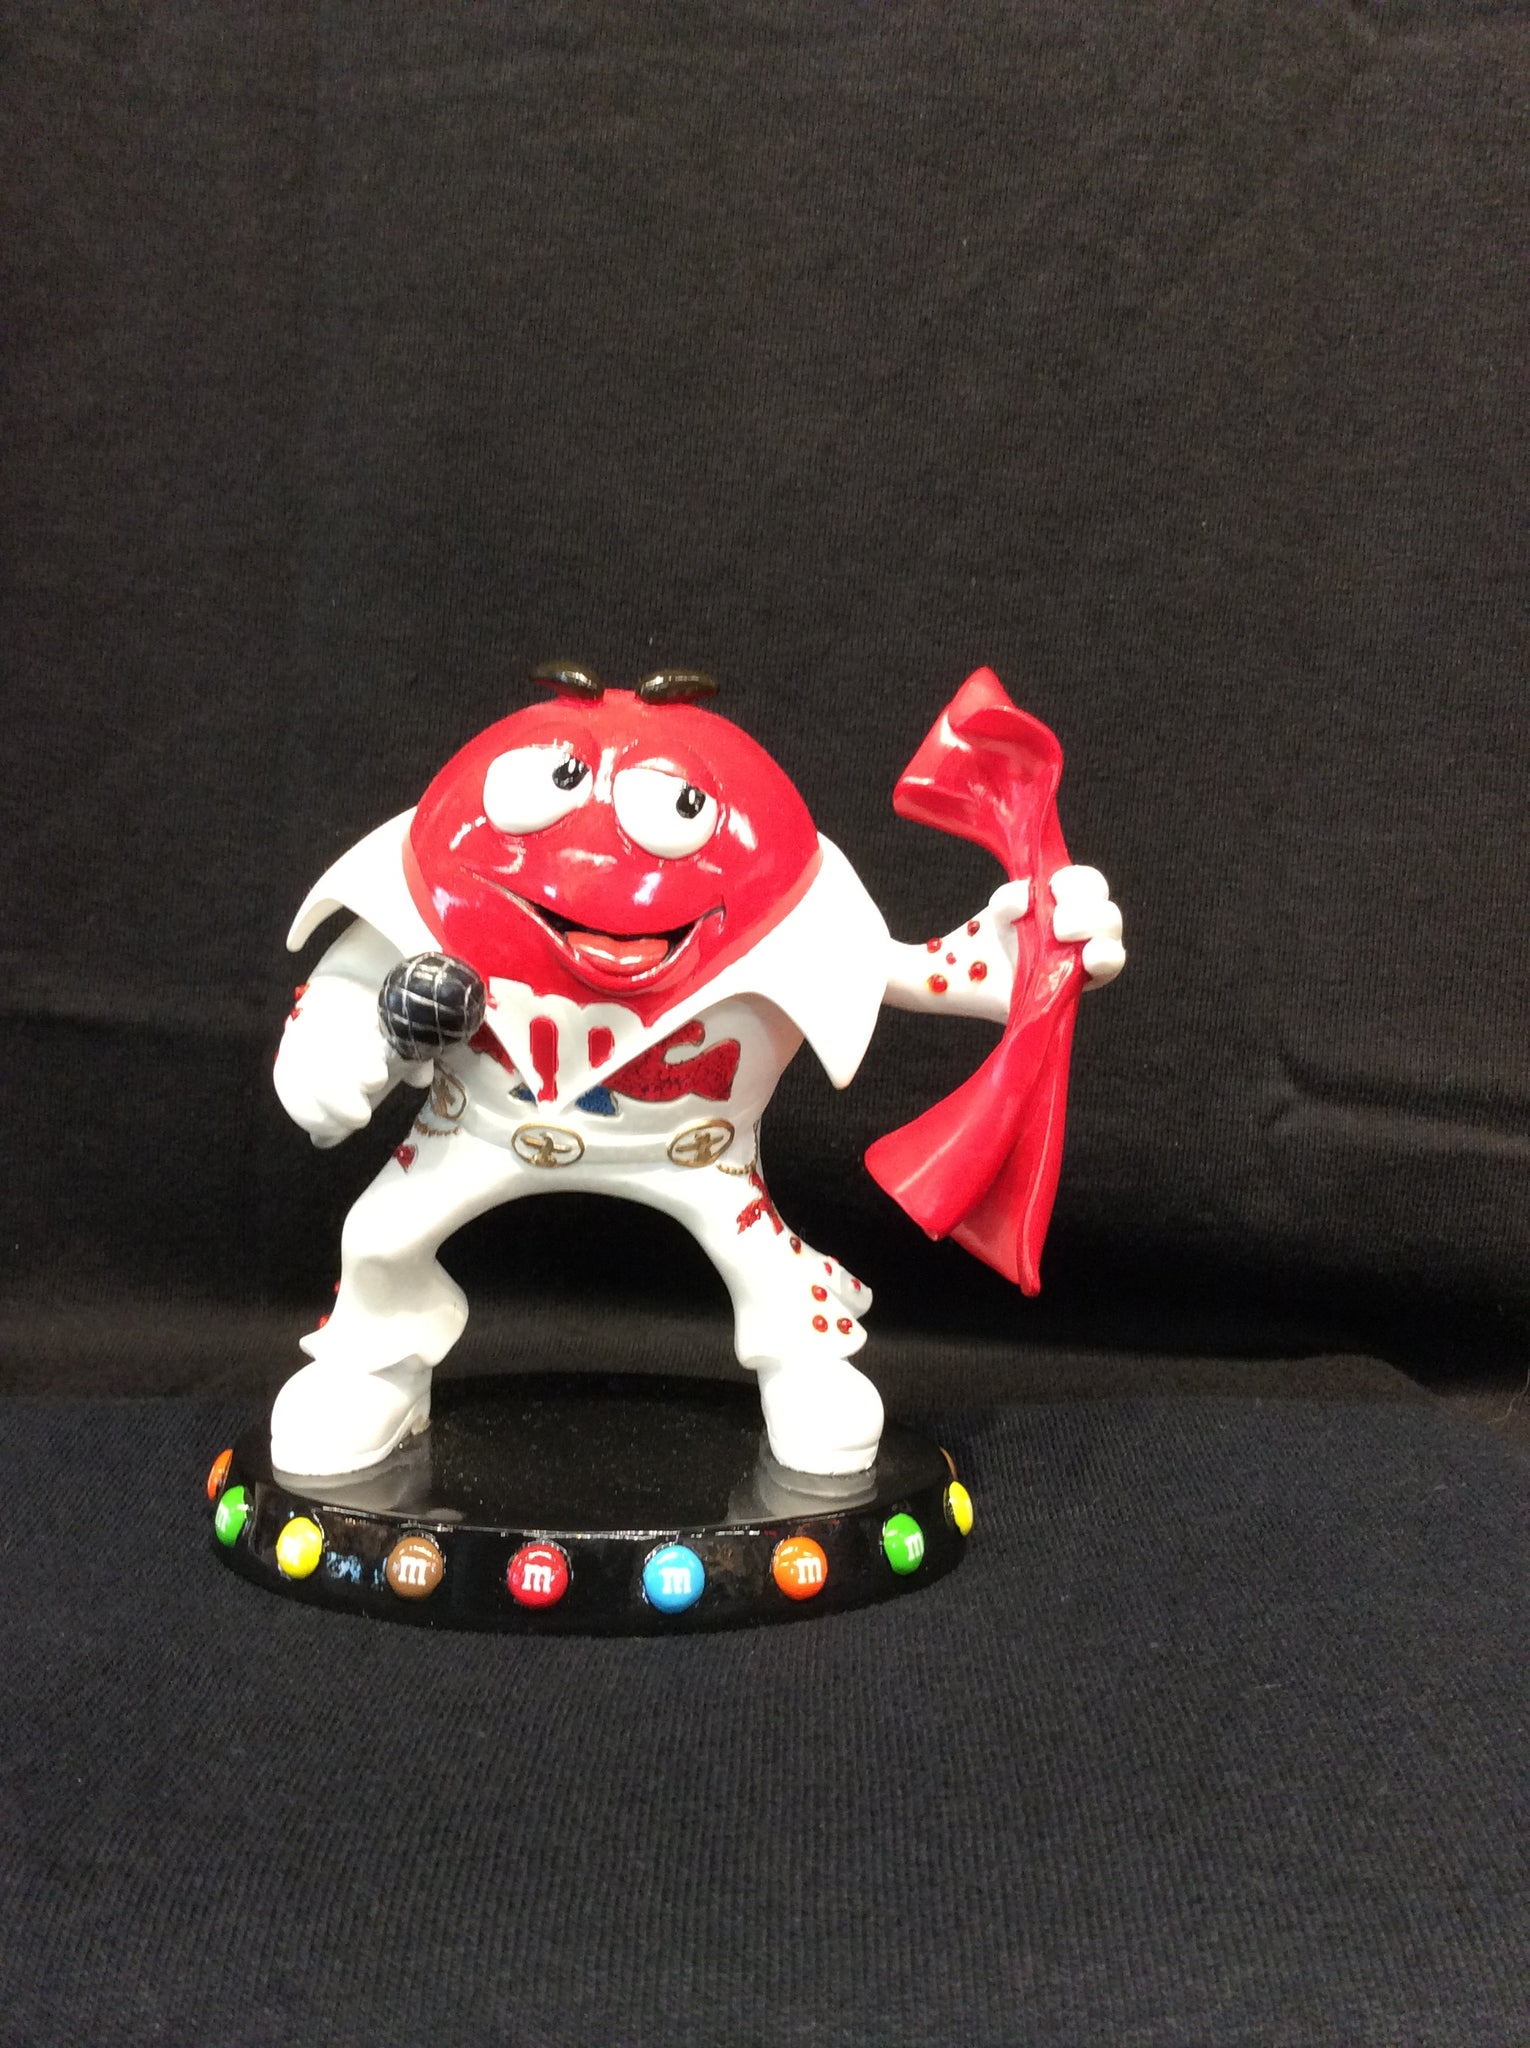 Figurine Elvis M&M's Red w/scarf